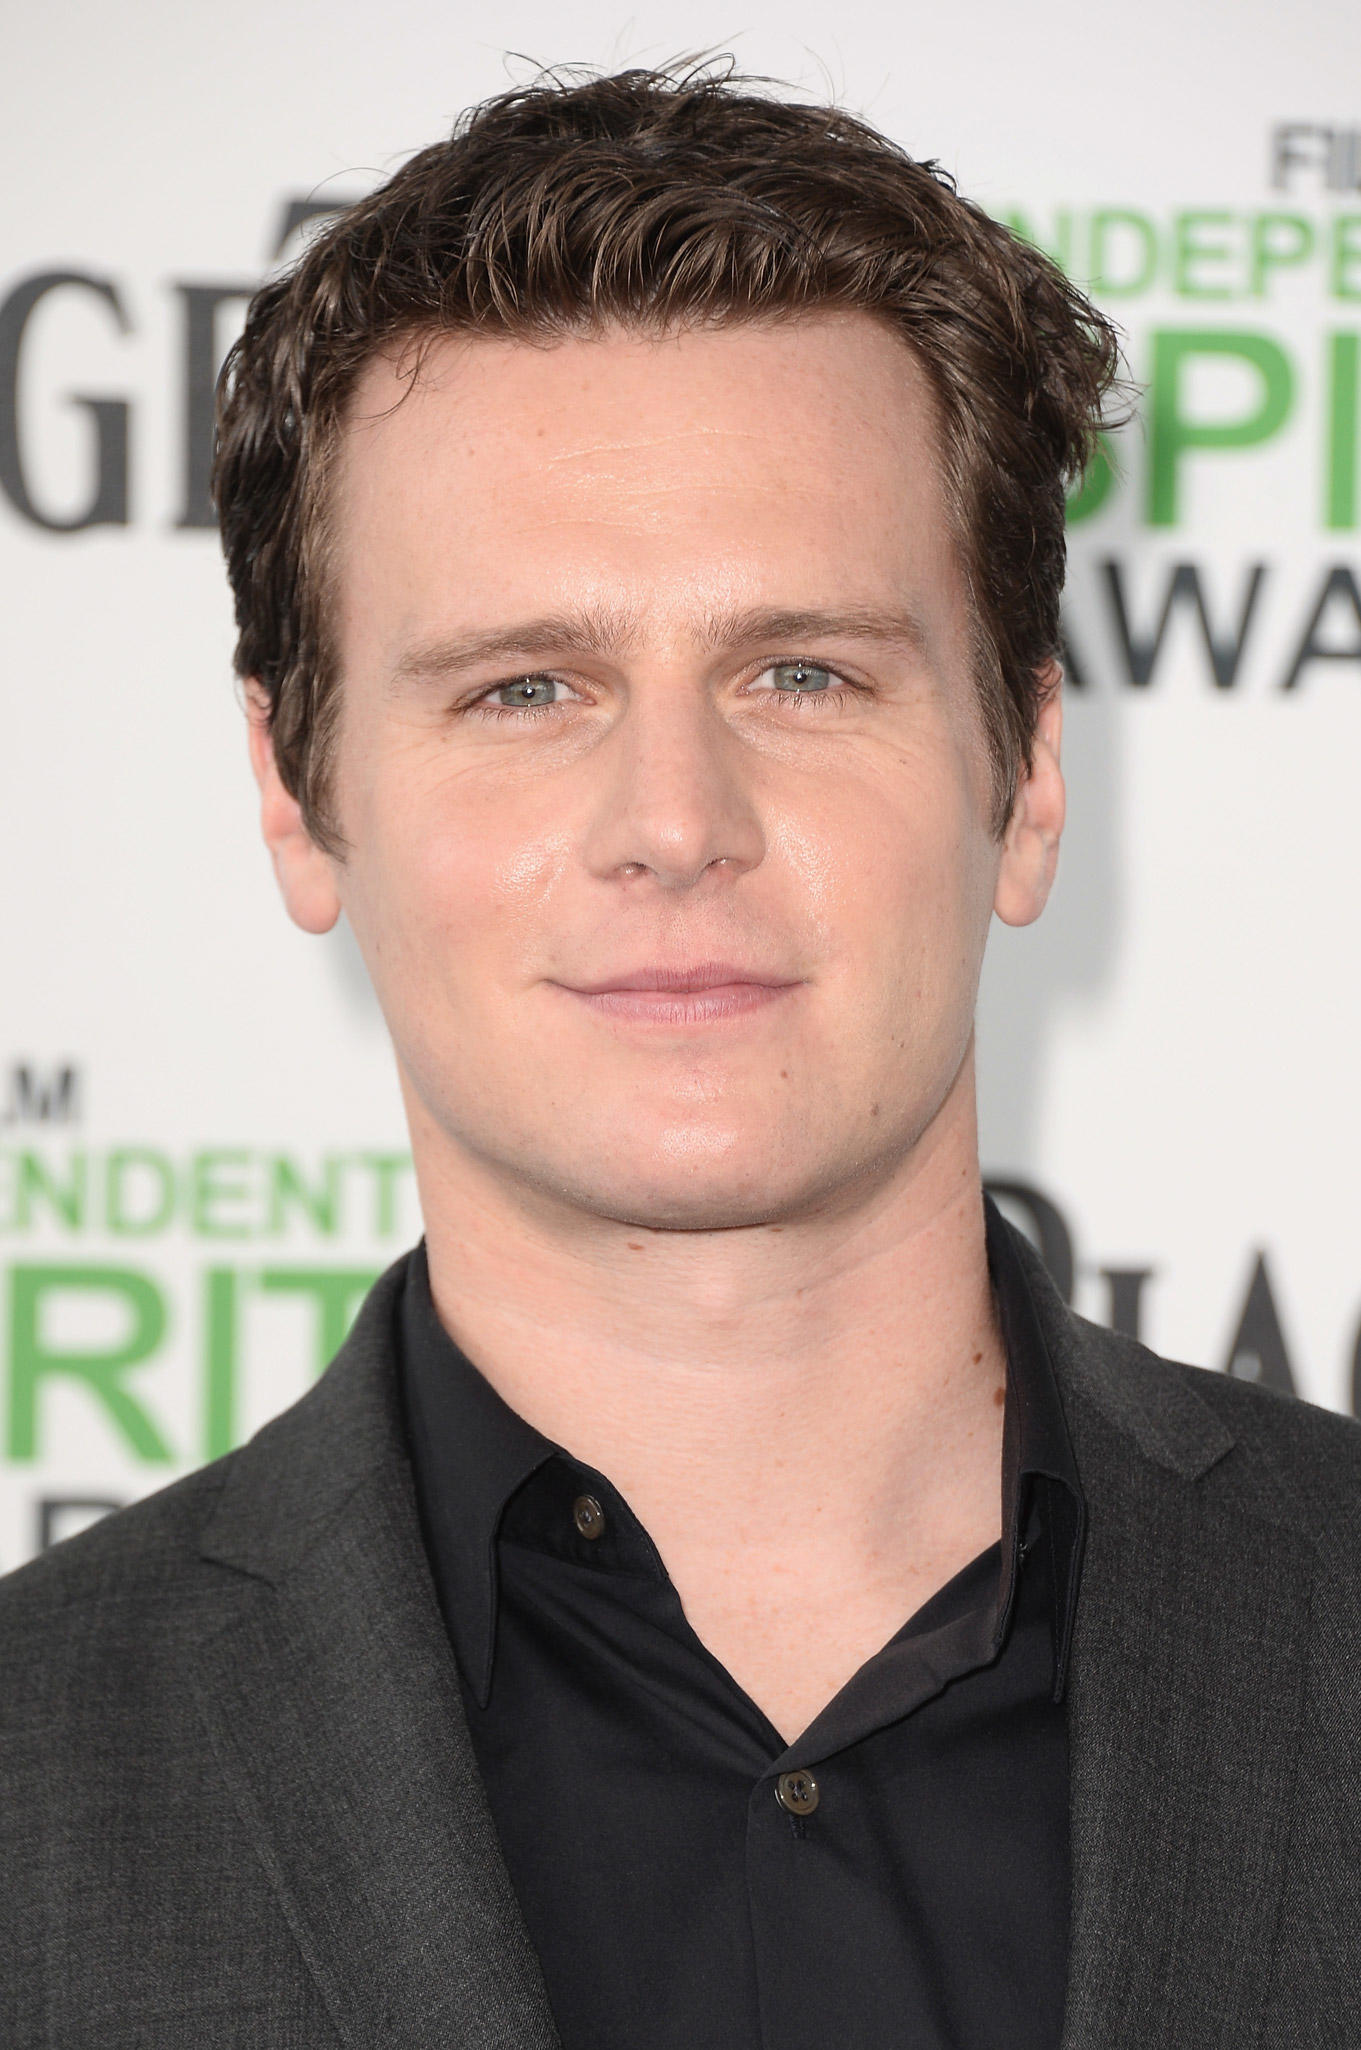 Jonathan Groff at the 2014 Film Independent Spirit Awards at Santa Monica Beach in Santa Monica, CA.